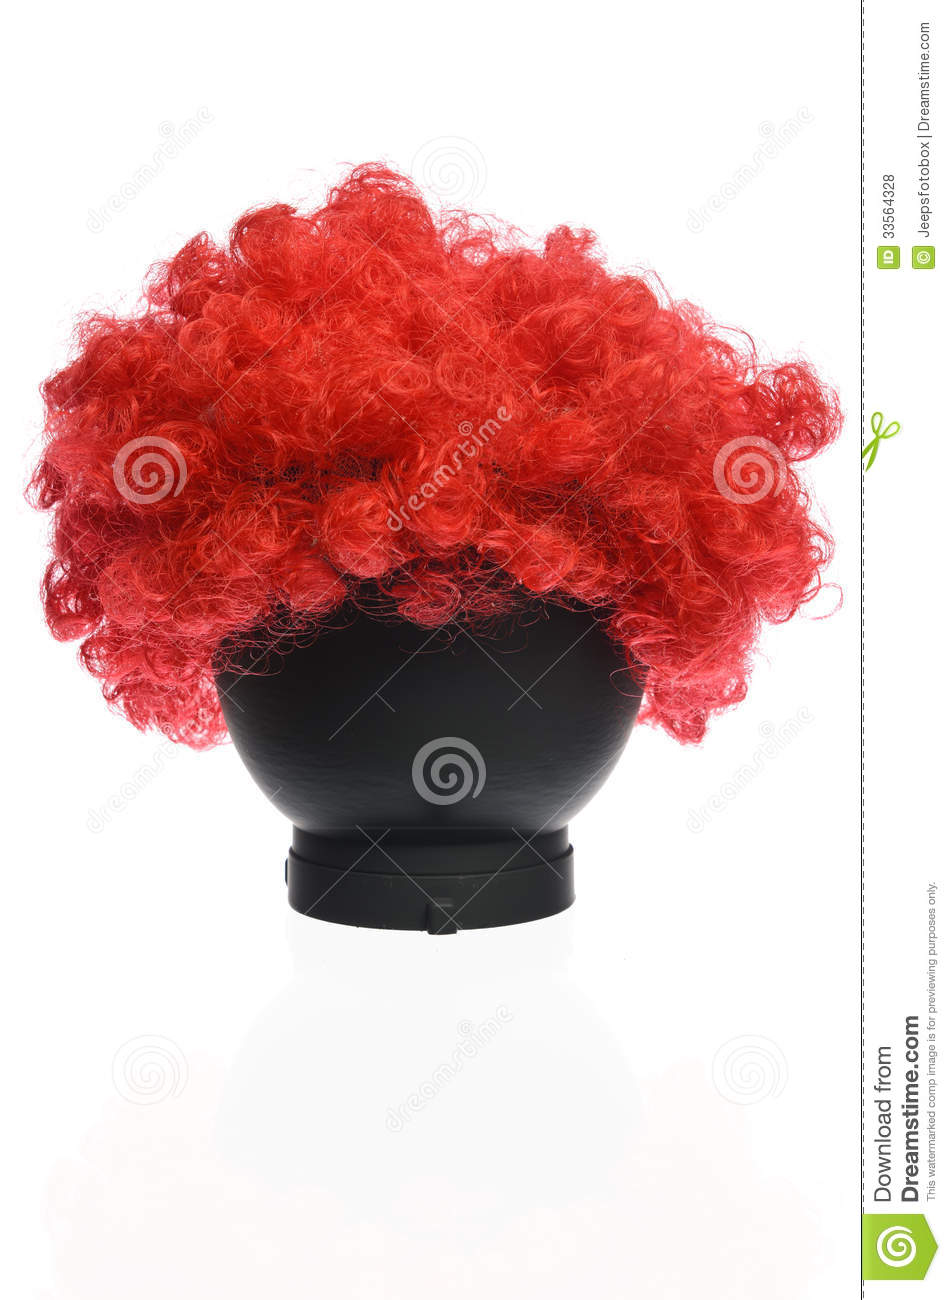 Red Curly Clown Wig Royalty Free Stock Photos   Image  33564328